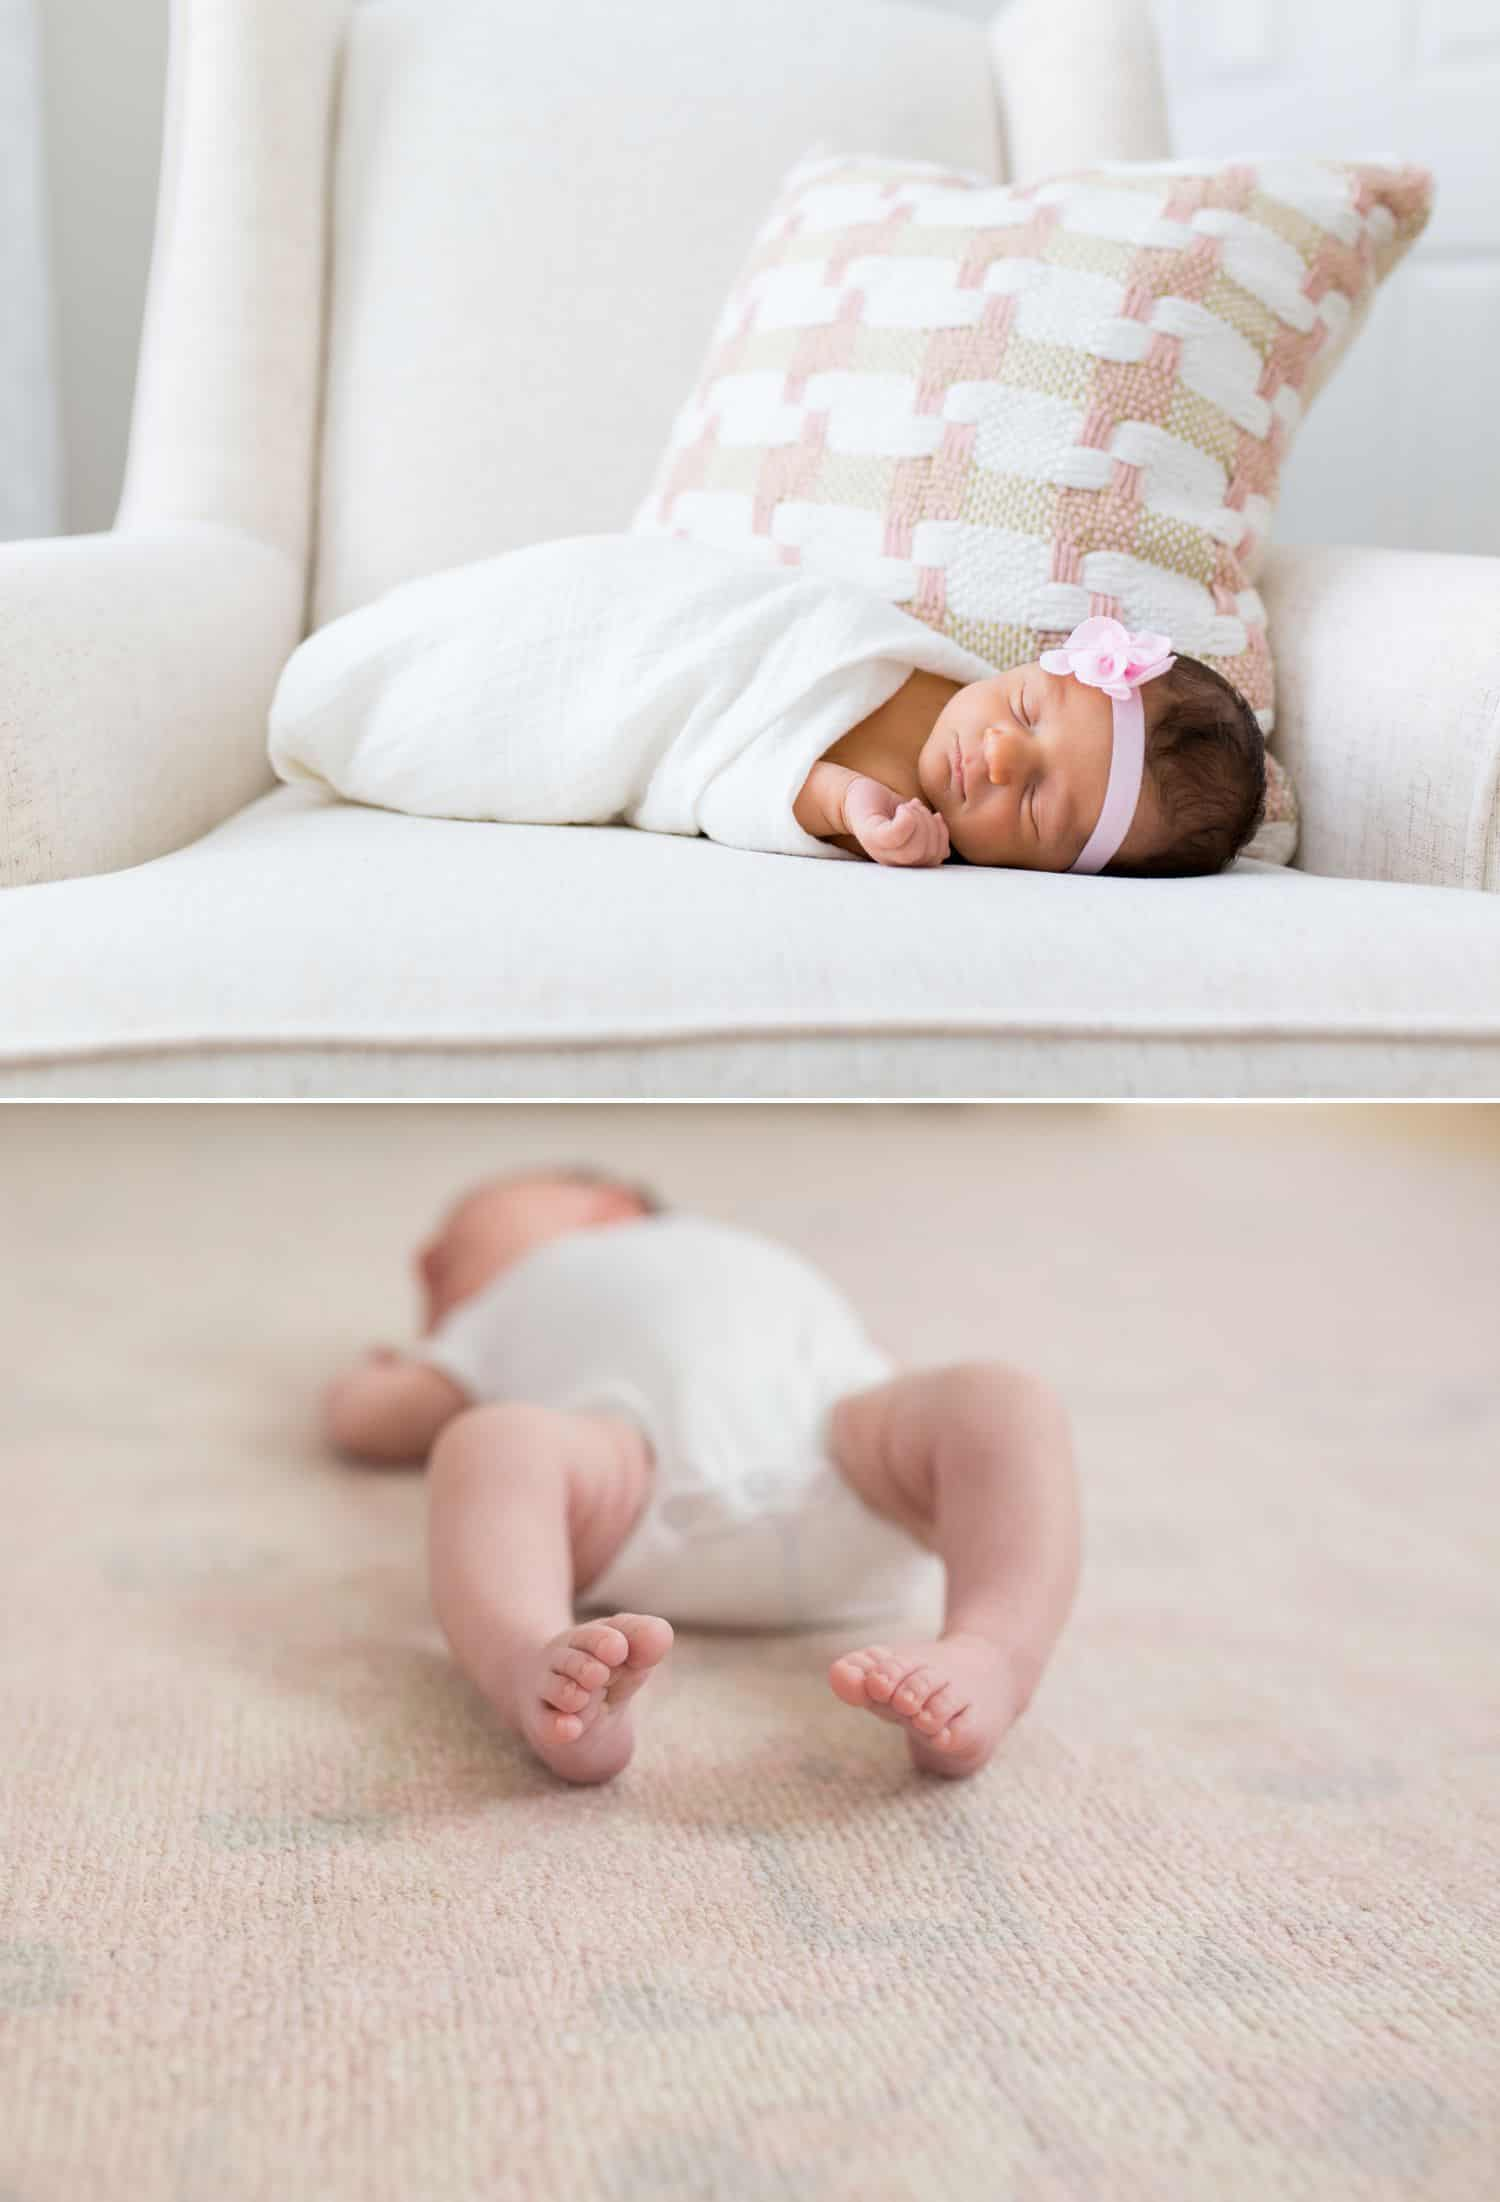 How To Get More Photography Clients? Start Saying No! - In-home baby photography by Jenny Perry.